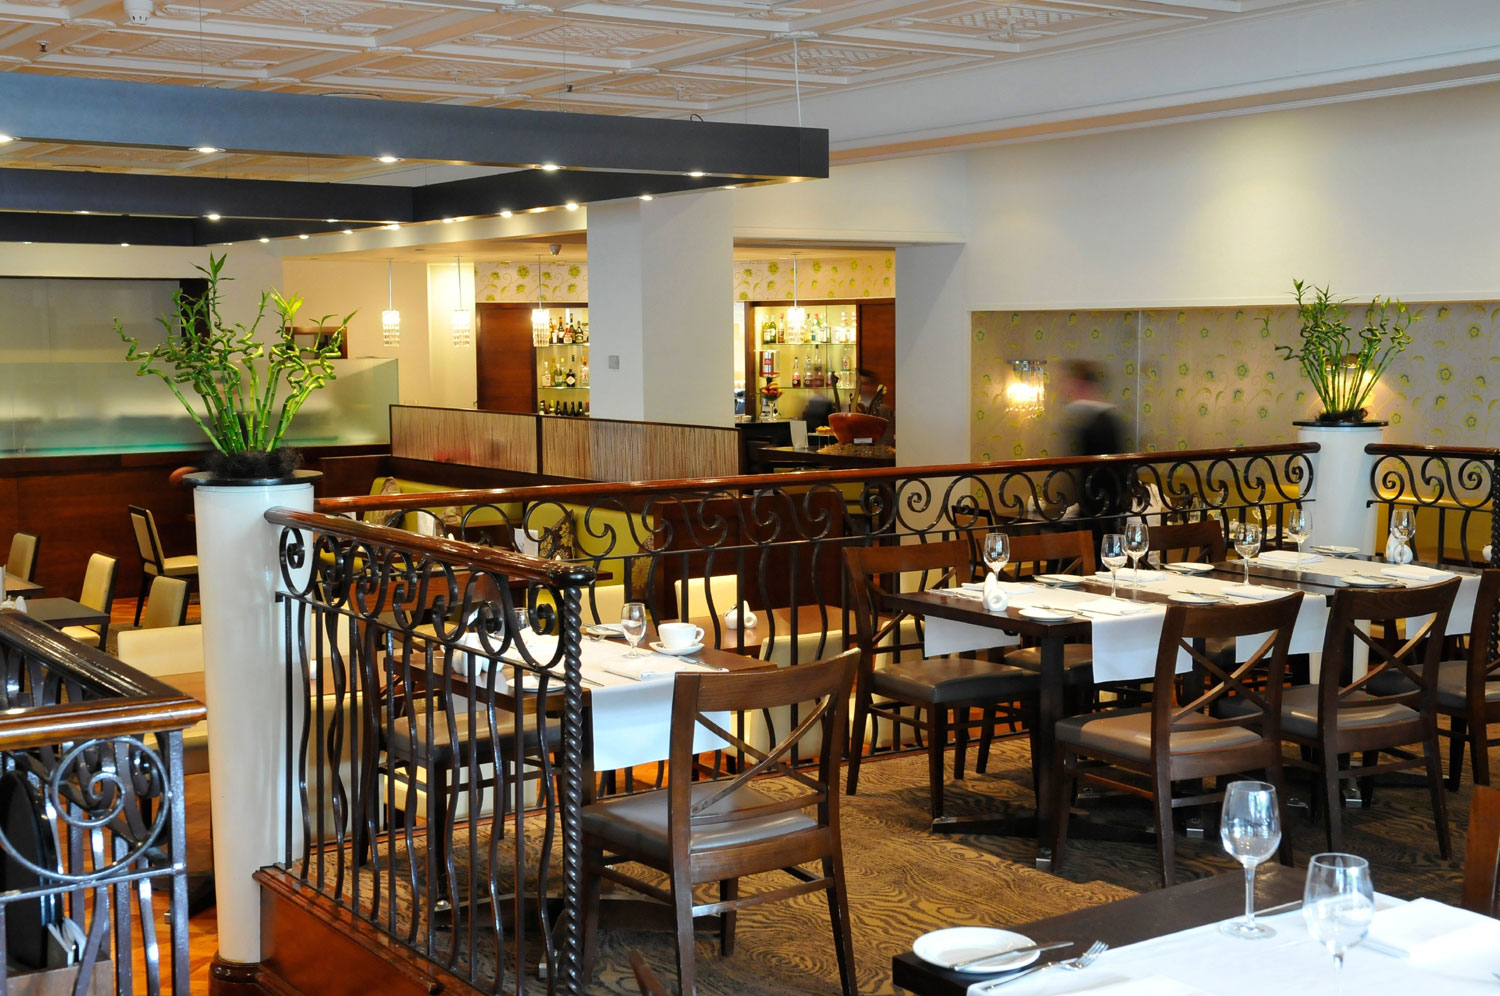 Reserve a table at Podium Restaurant and Bar - Park Lane